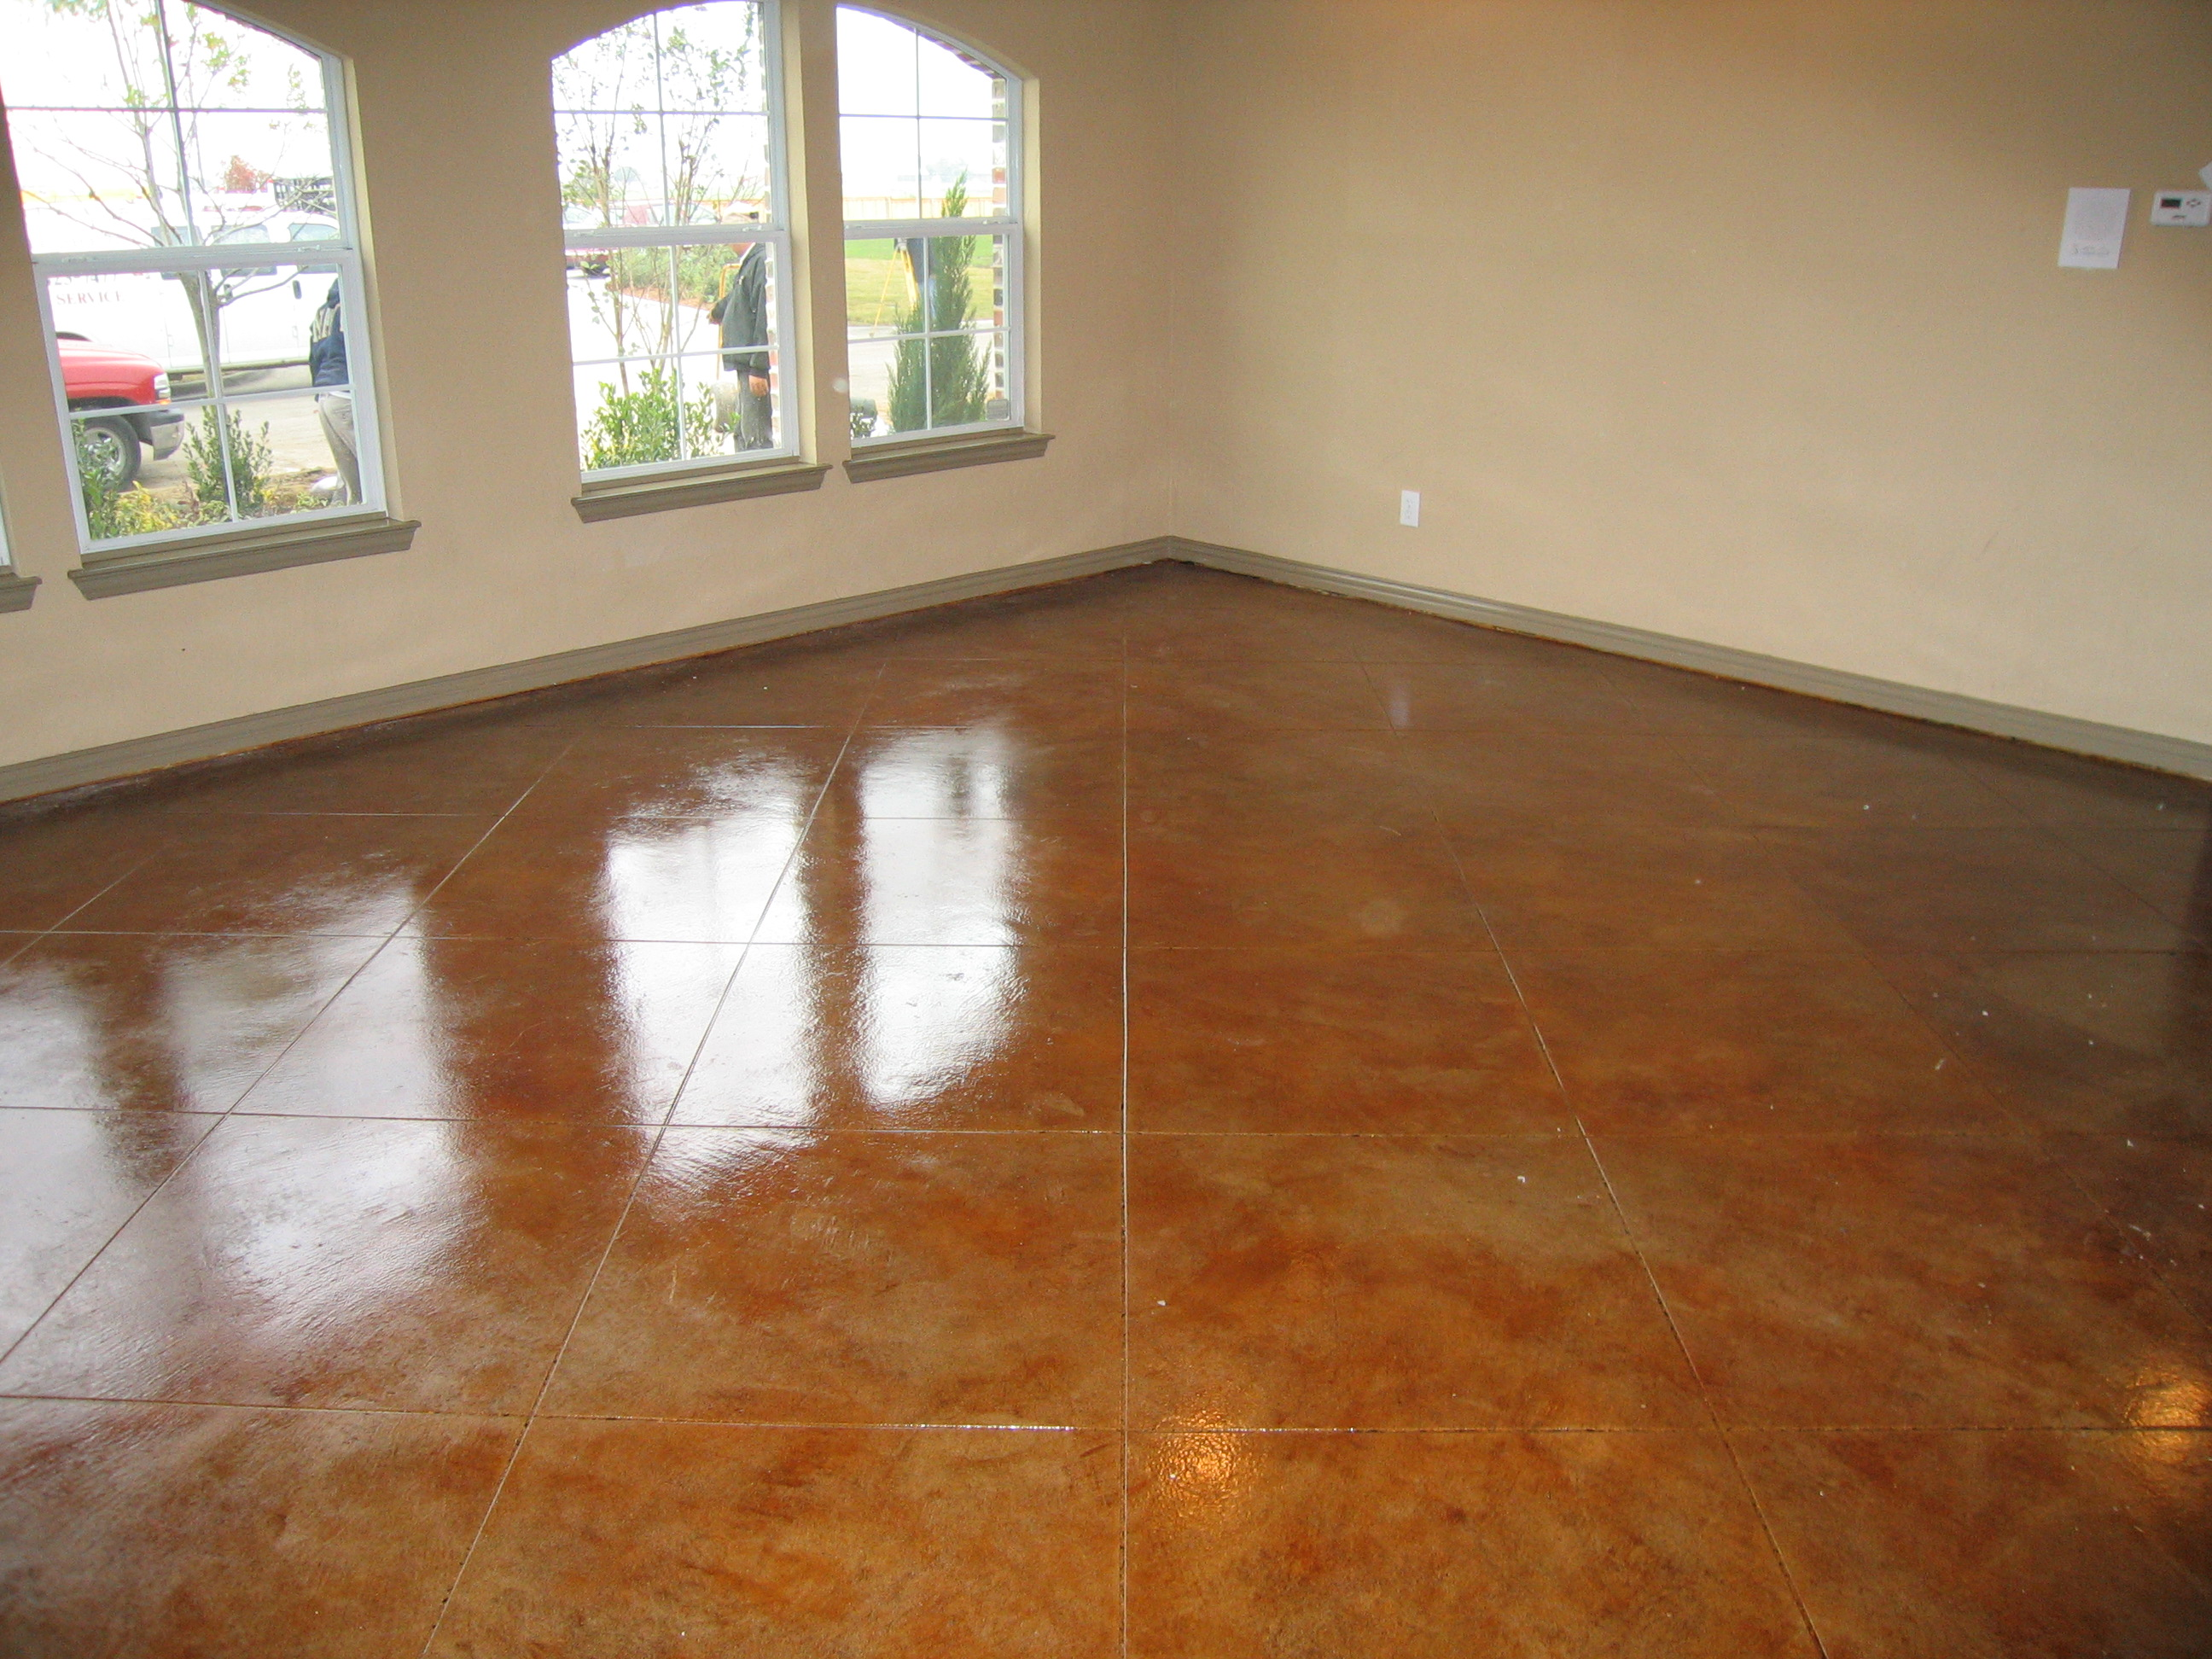 Scored Concrete Flooring : Installers of stamped concrete acid stain and decorative